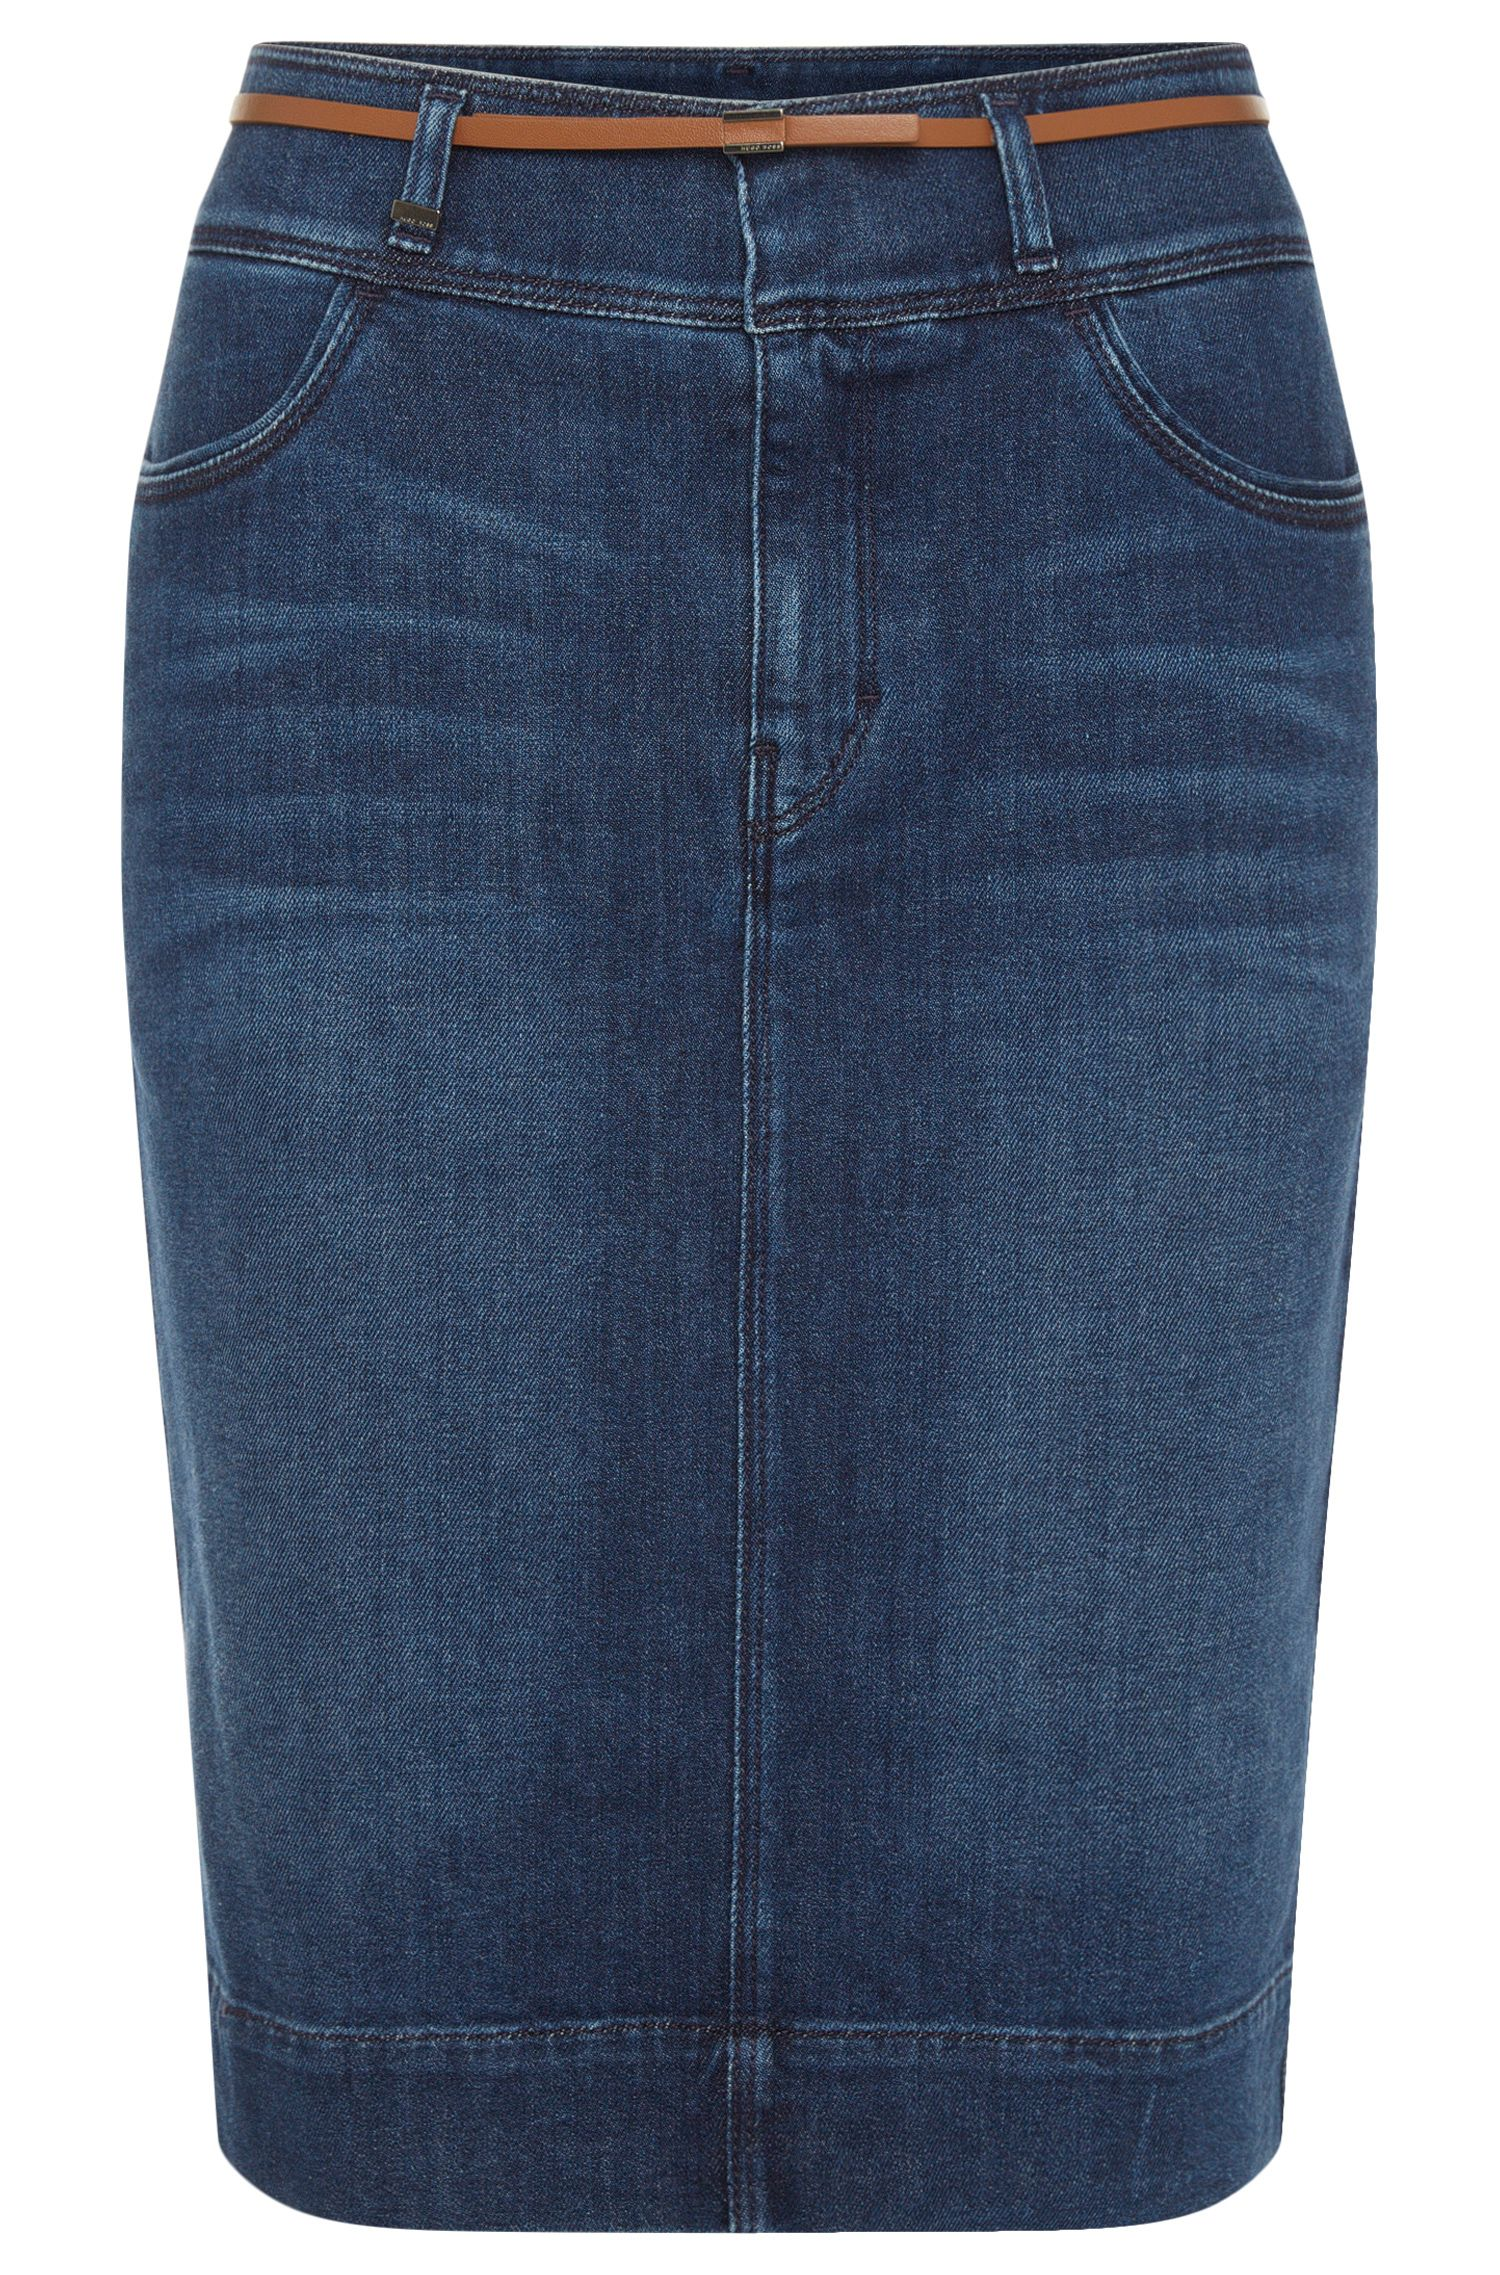 Jeans skirt in stretch cotton with belt: 'Nelana'